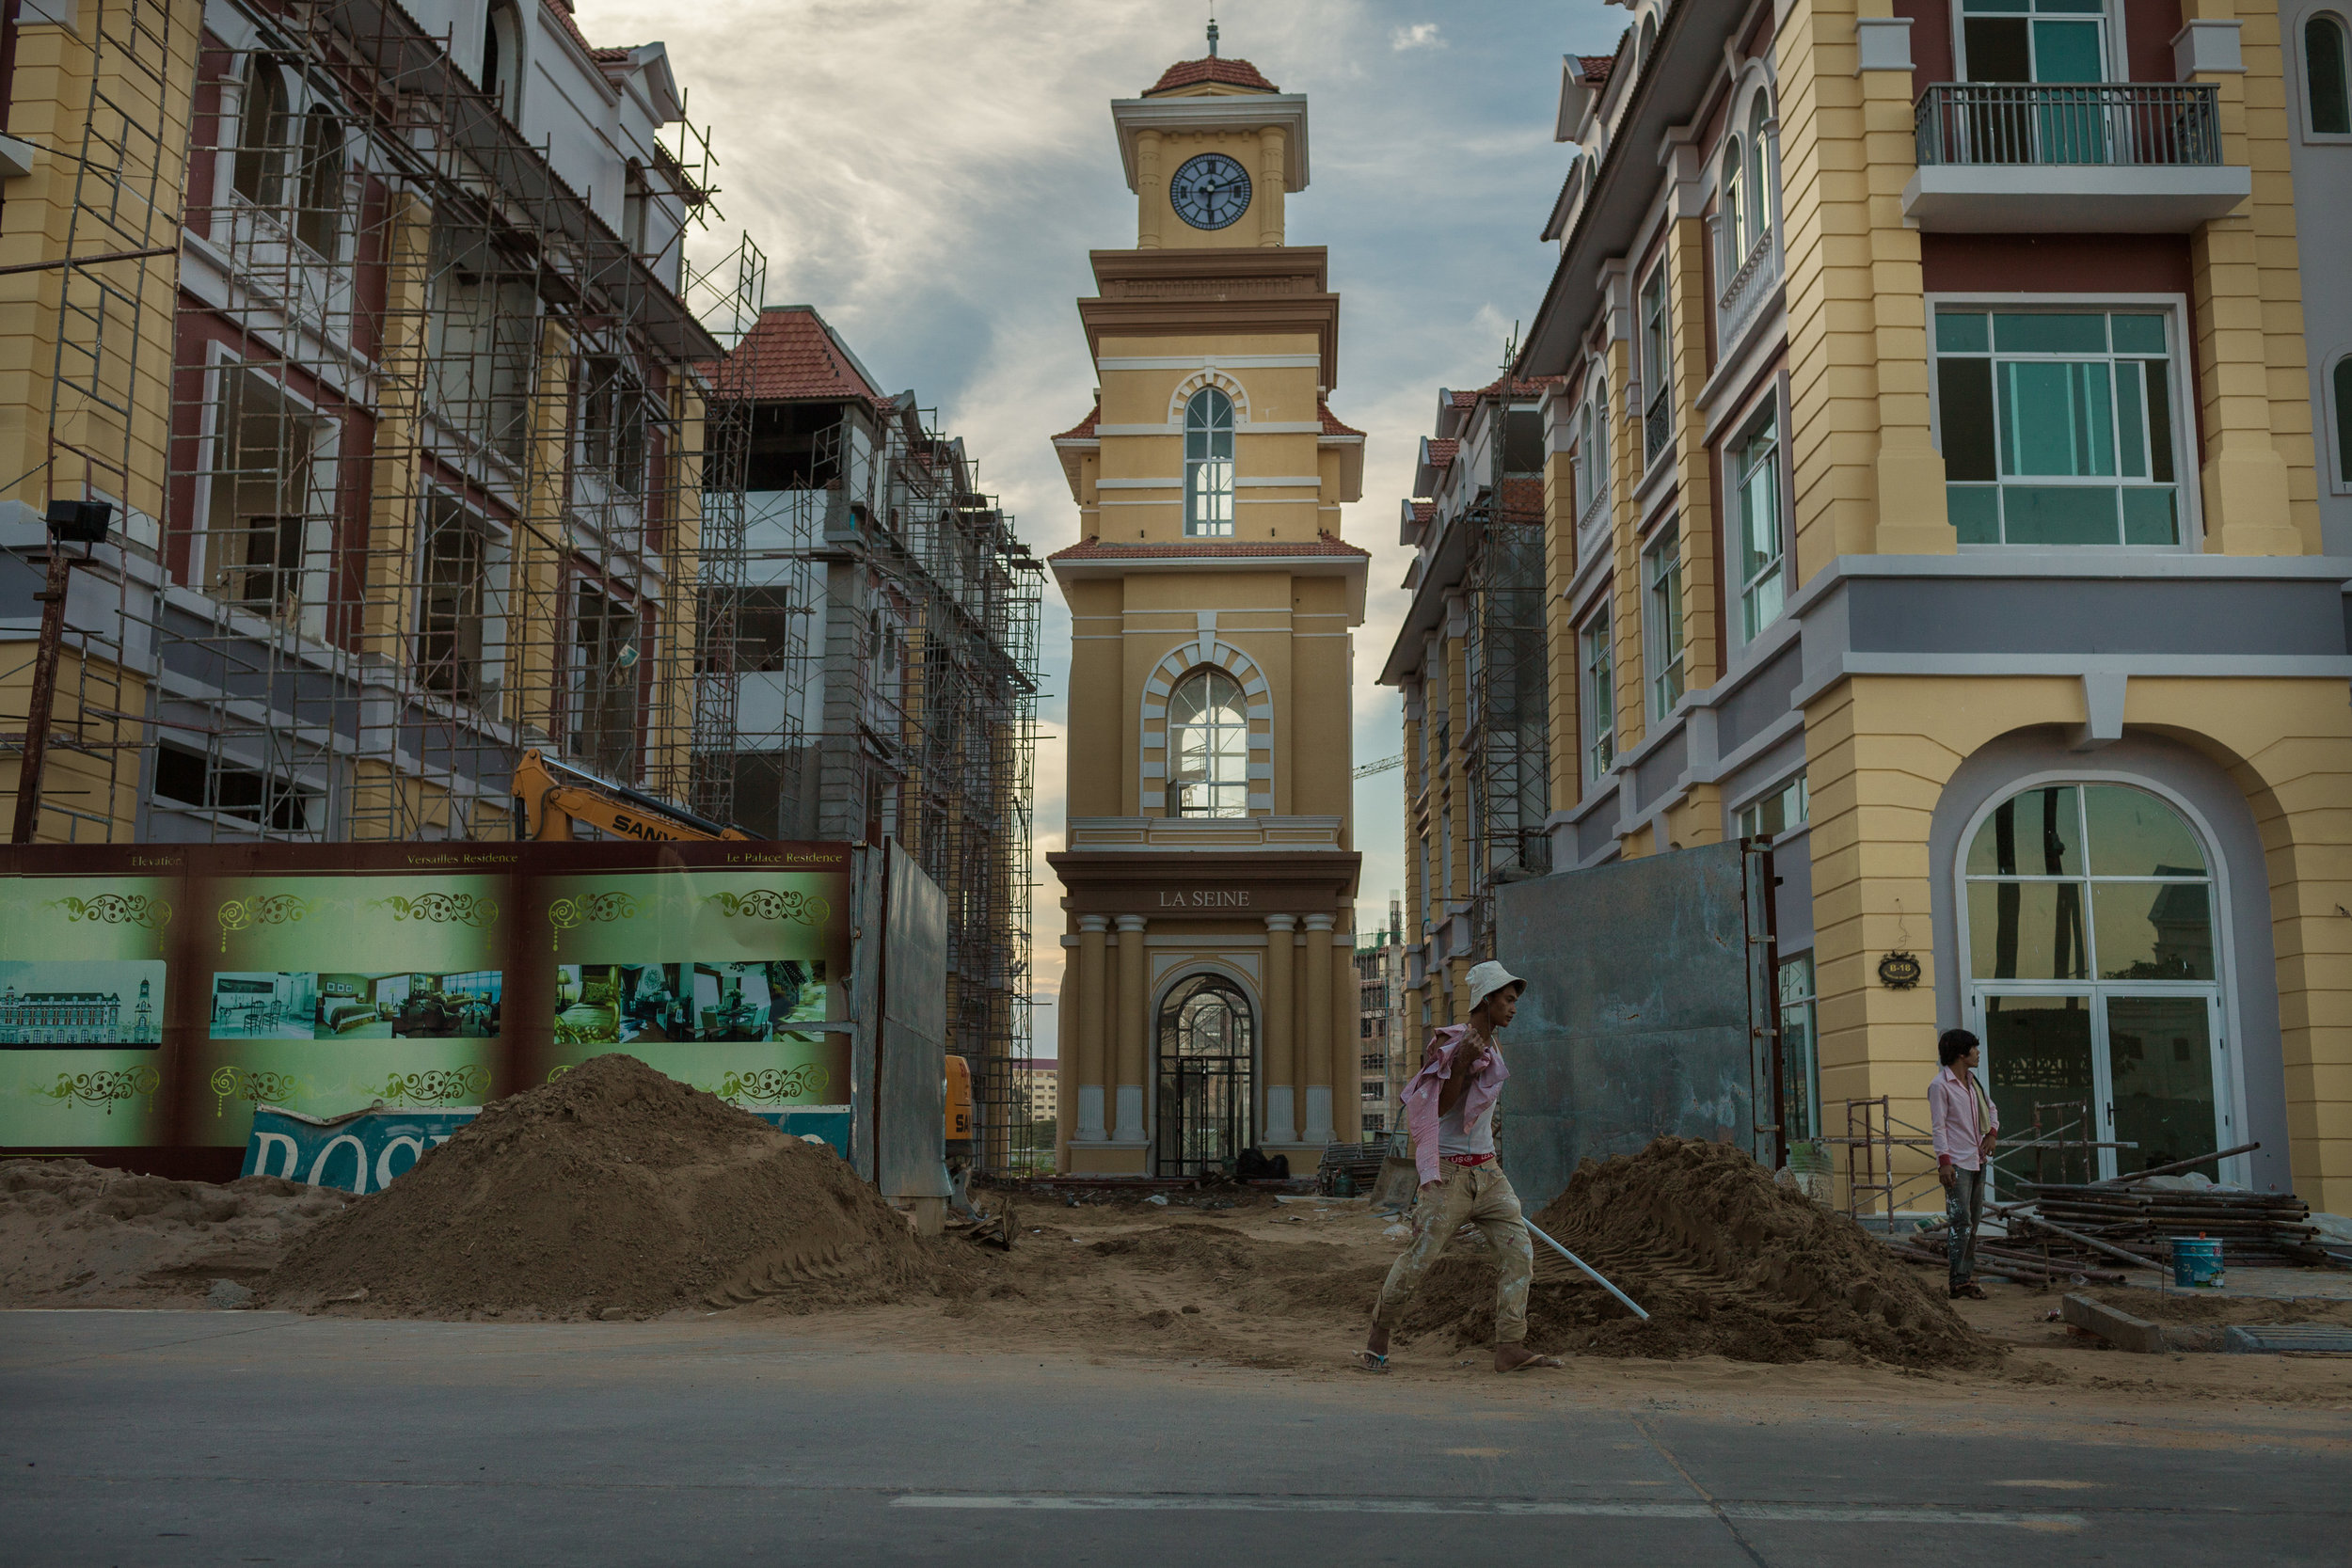 Image: Construction work in Phnom Penh © Thomas Cristofoletti